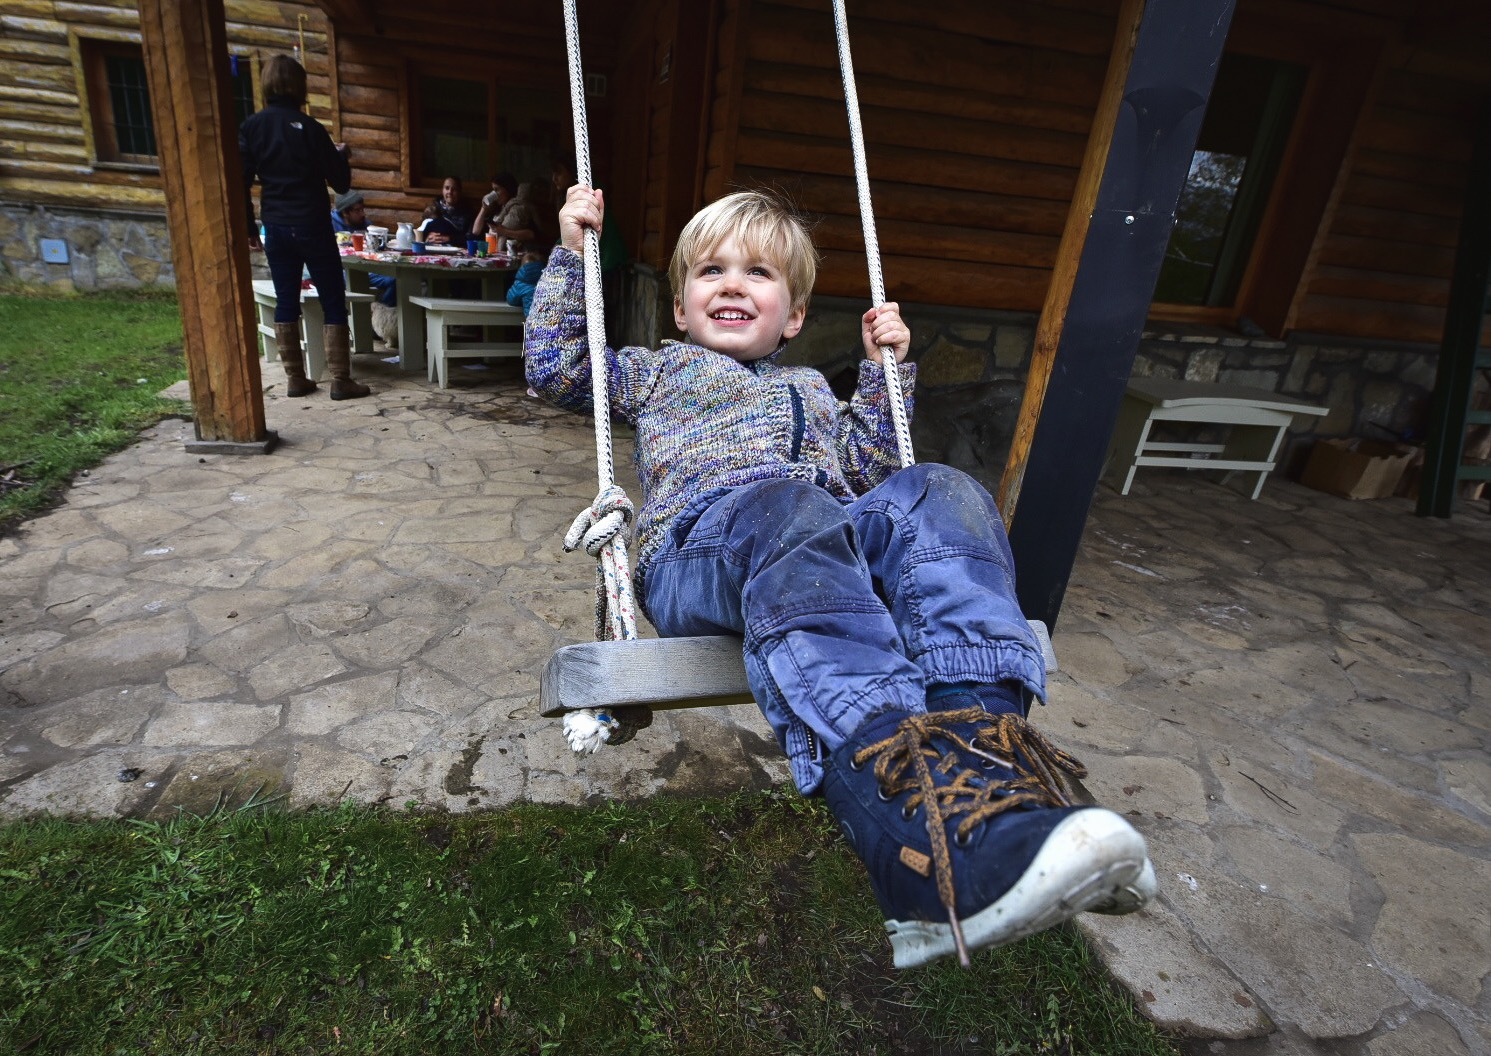 Taking flight  Swinging at Granny's house in San Martin de los Andes, Patagonia. Photo by  Dan Montalbano  (aka our bilingual charmer)